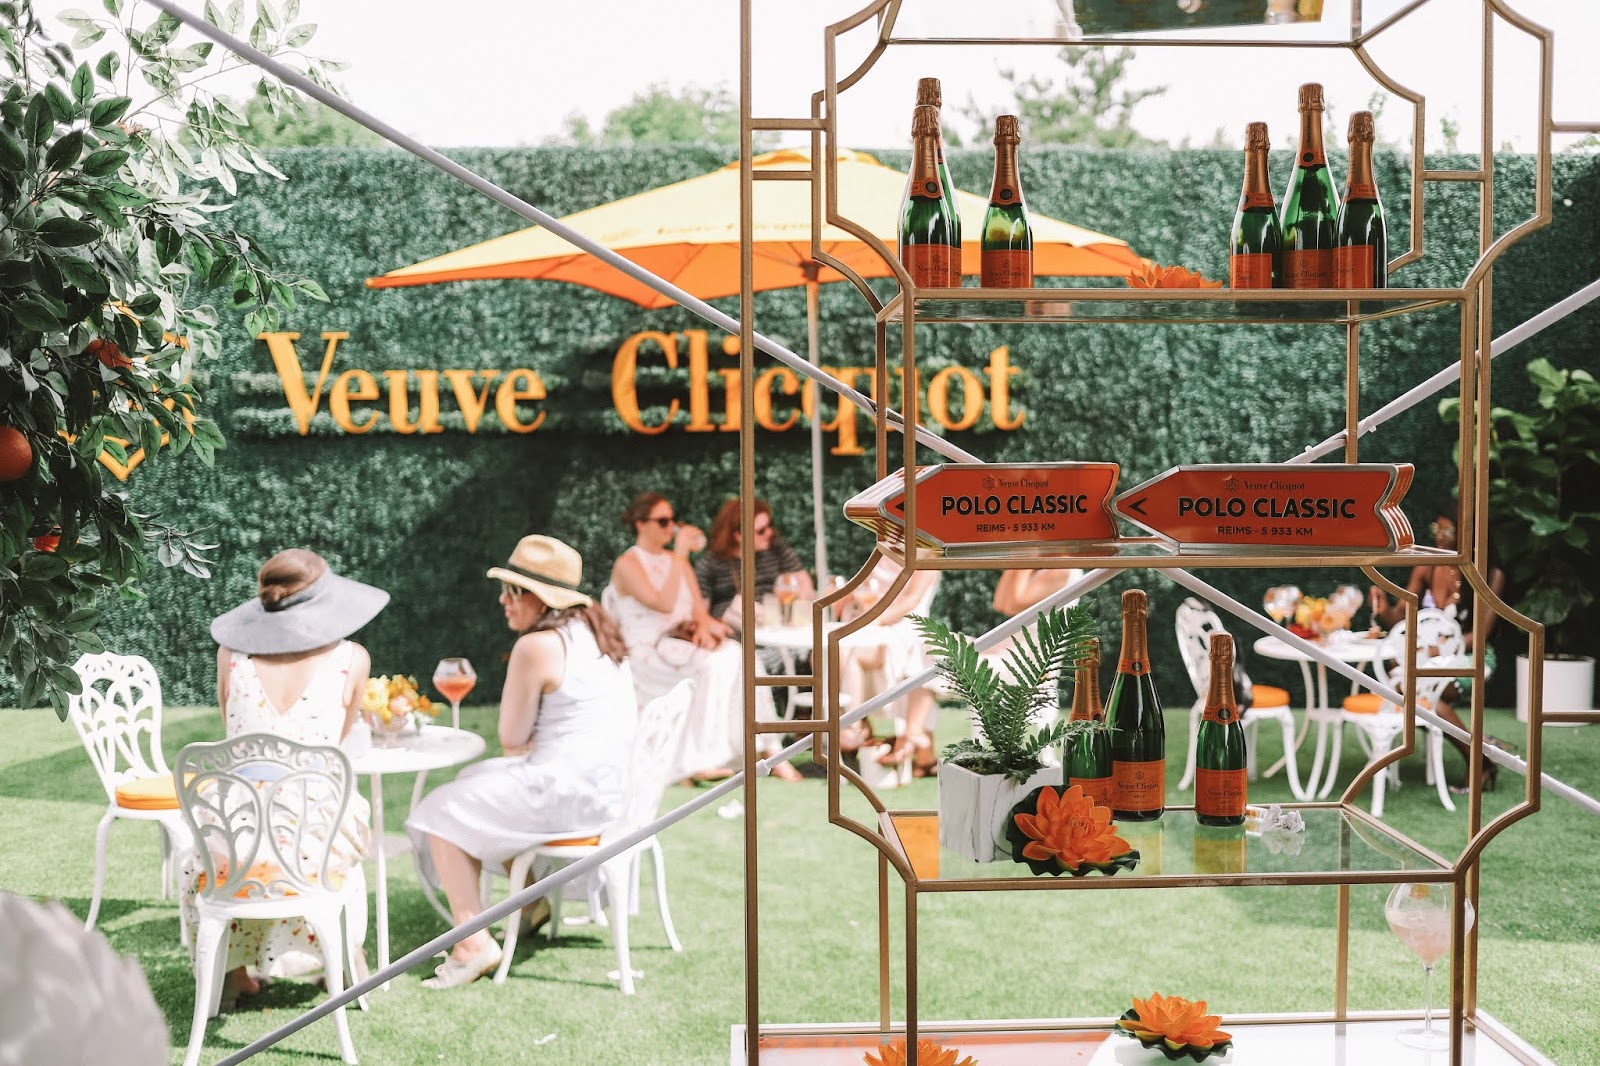 VC Polo Classic VIP Section